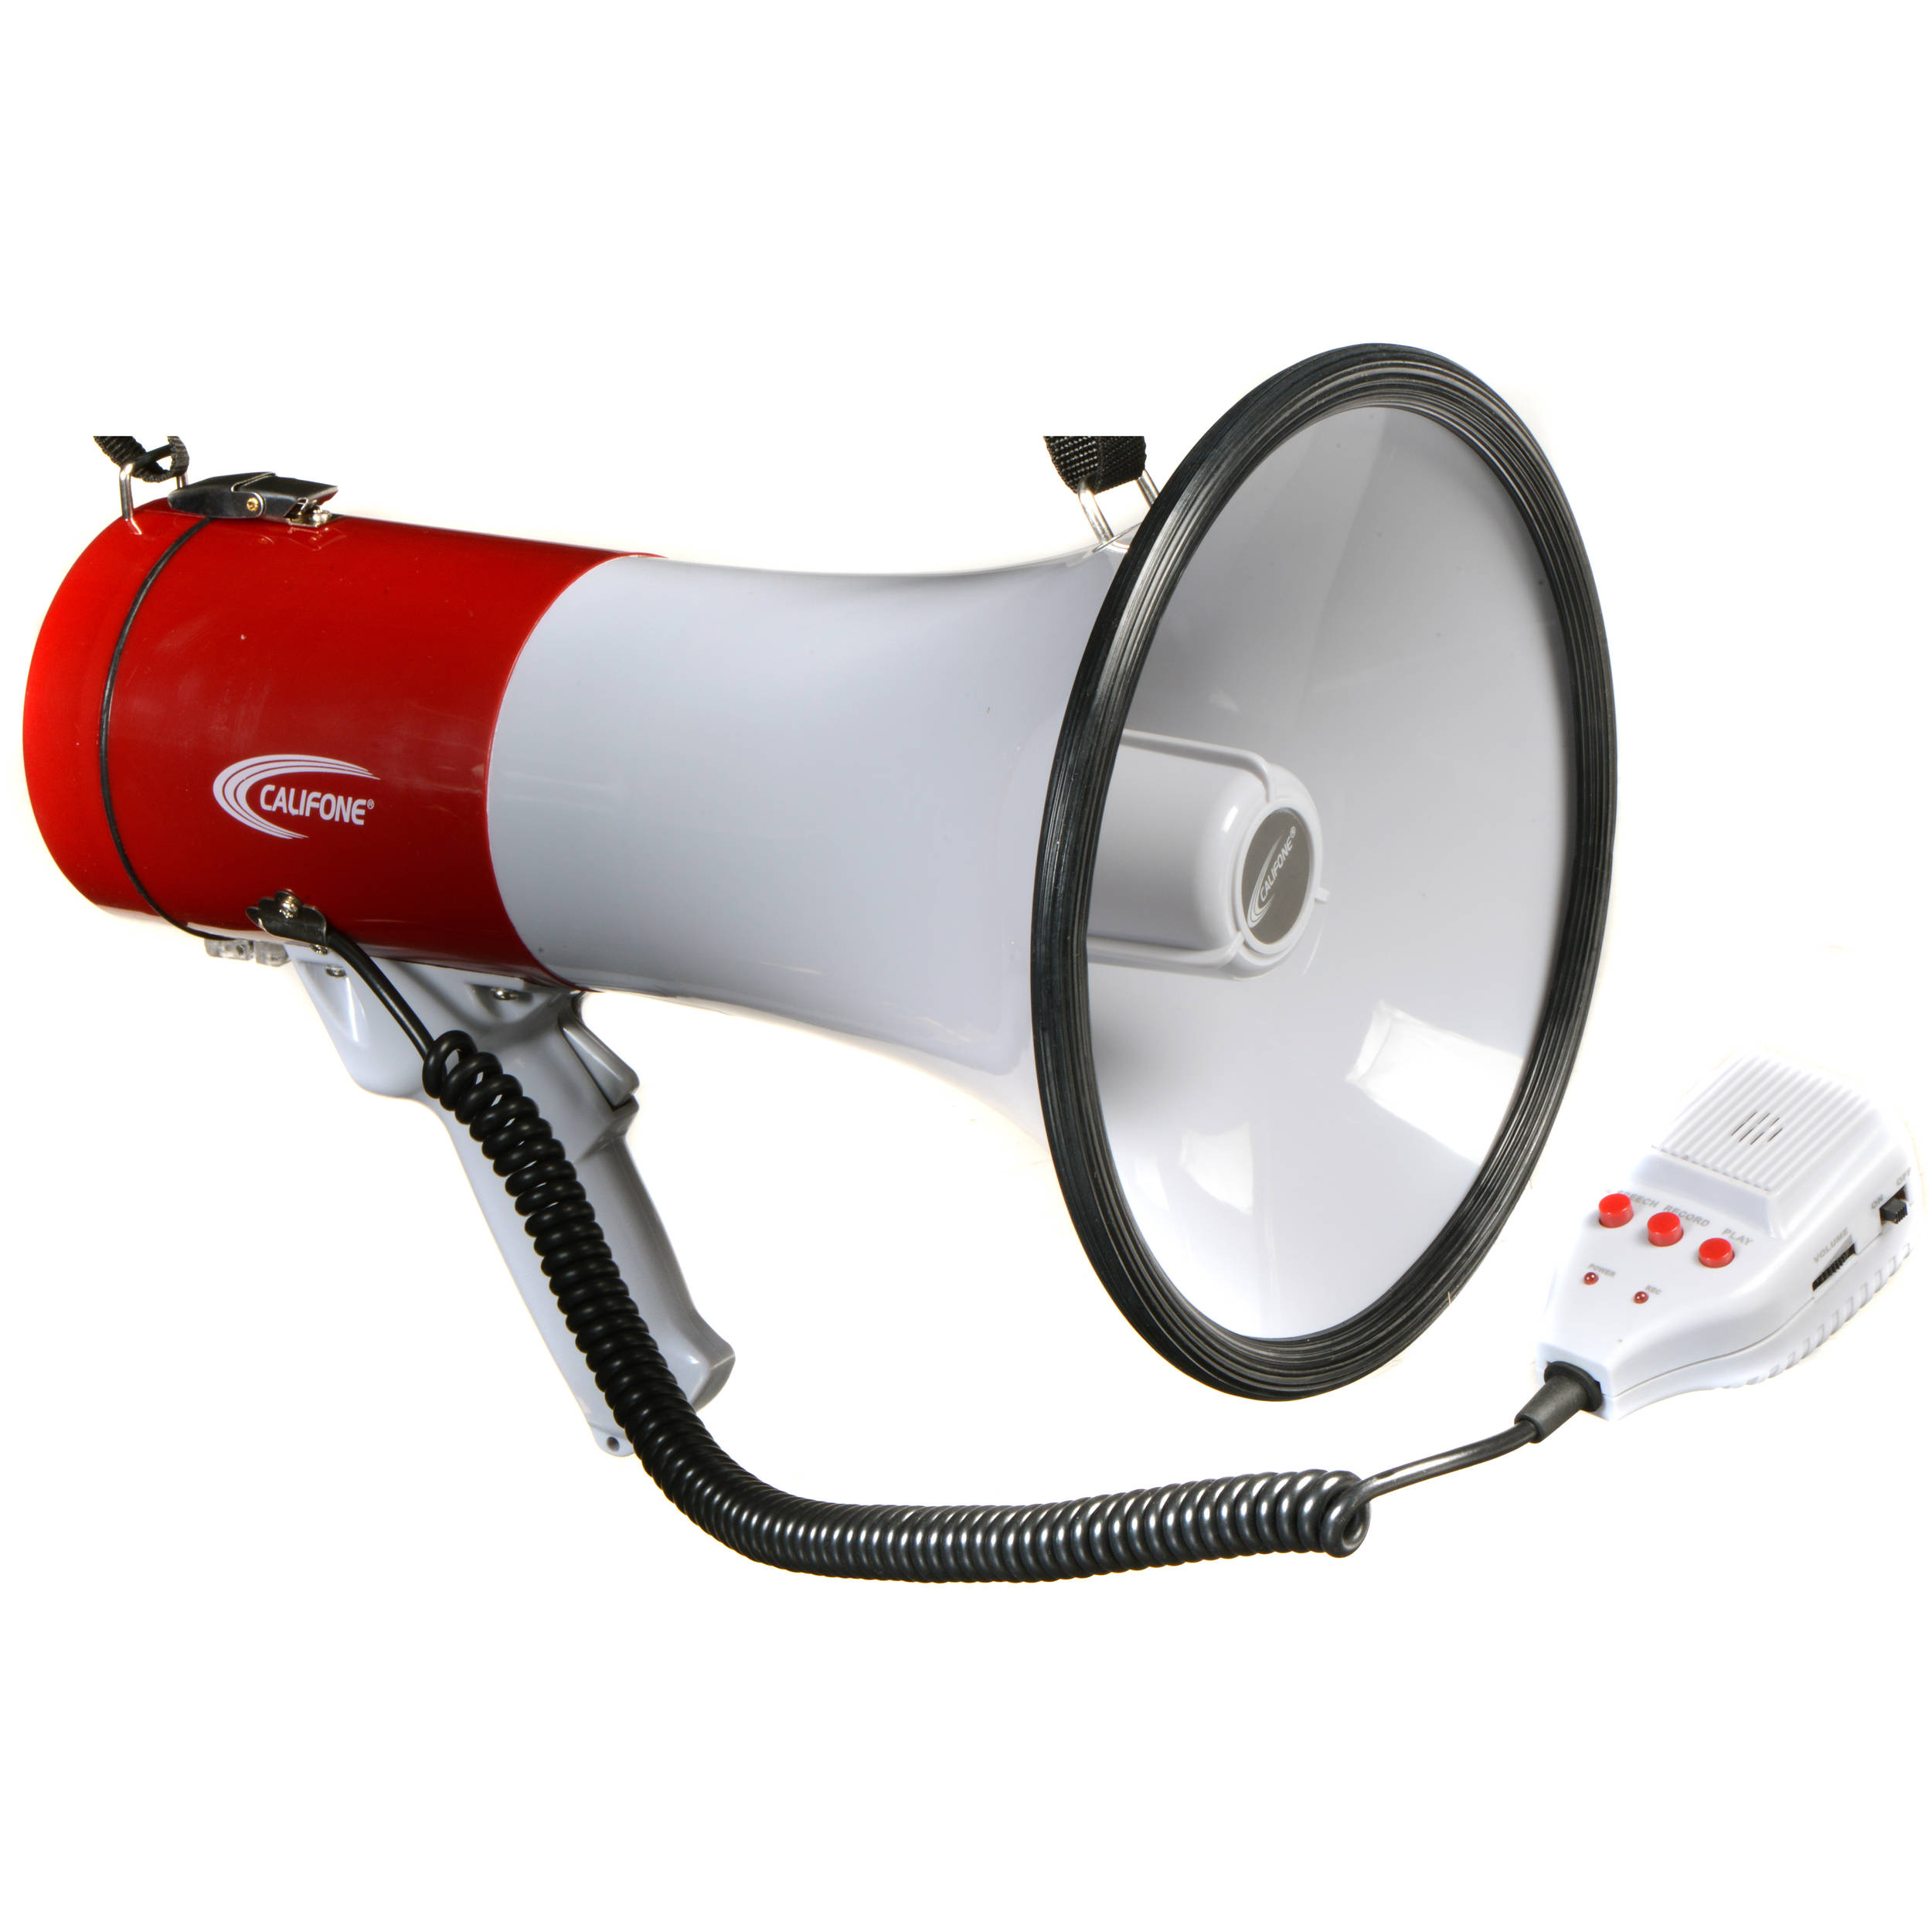 image of megaphone Califone PA25R 25W Handheld Megaphone with Detachable PA-25R B